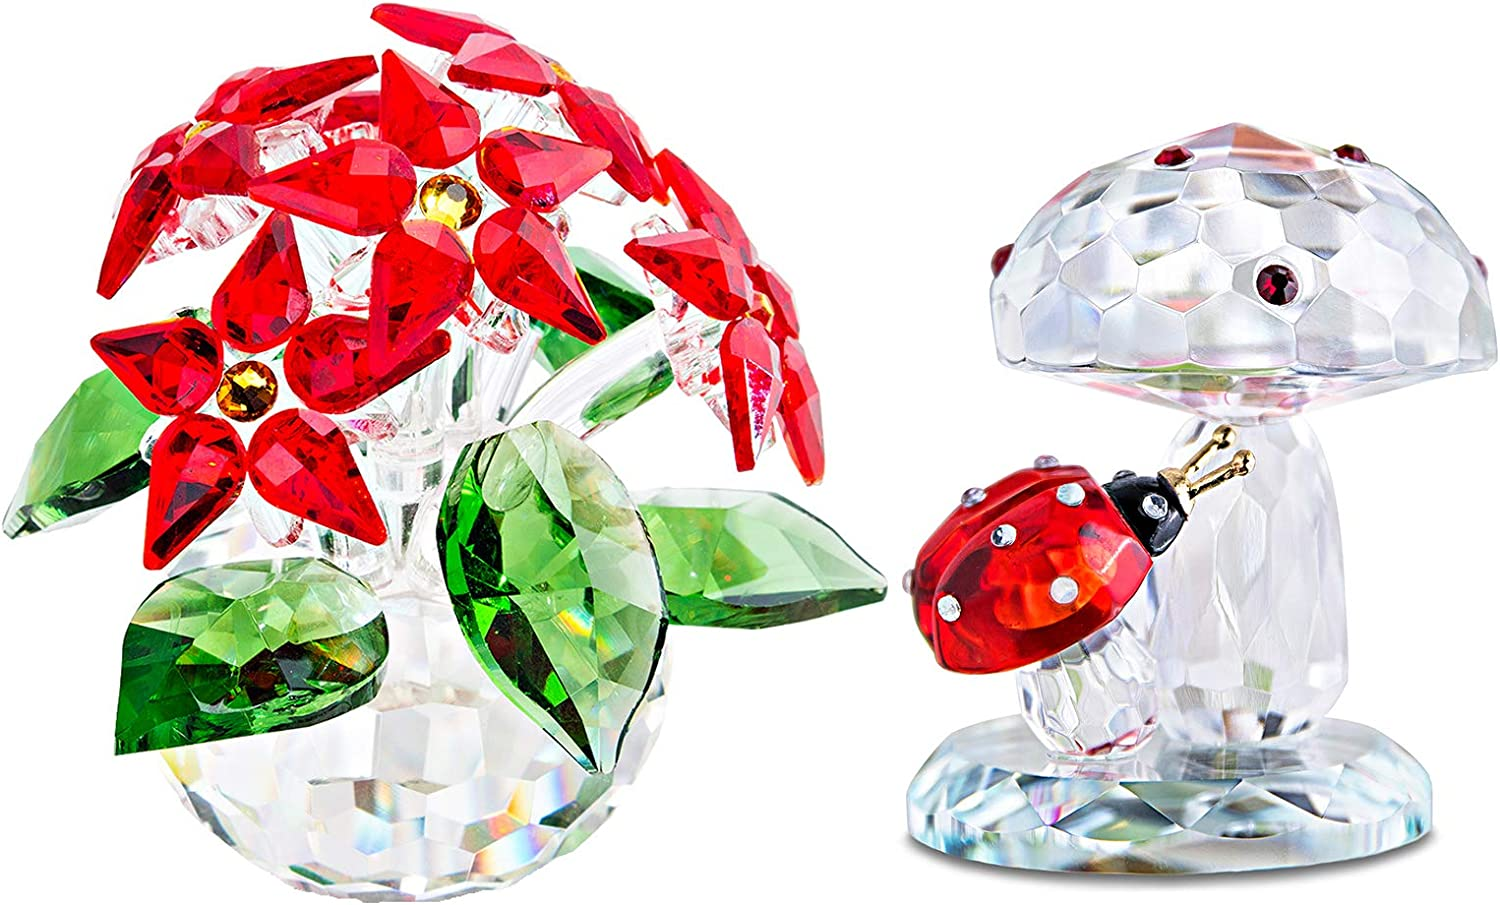 H&D HYALINE & DORA Christmas Day Gifts,Handmade Crystal Figurine Ornament,Crystal Poinsettia with Ladybug on Mushroom Paperweight